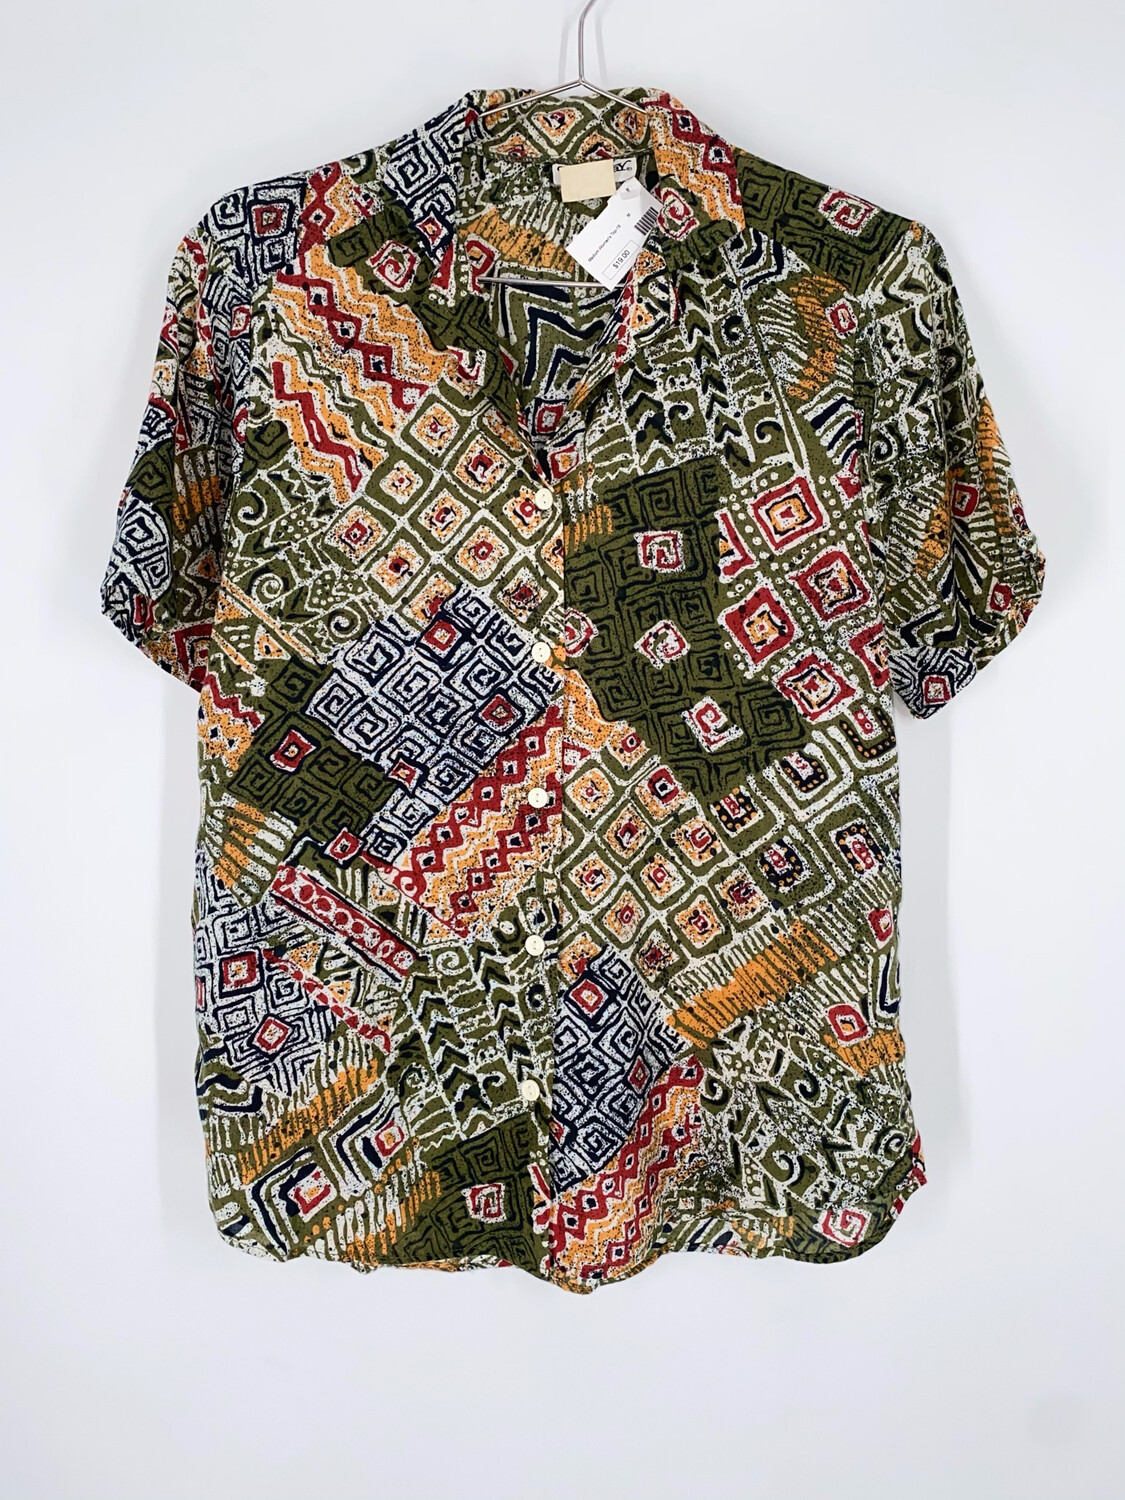 Booth Bay Button Up Top Size M